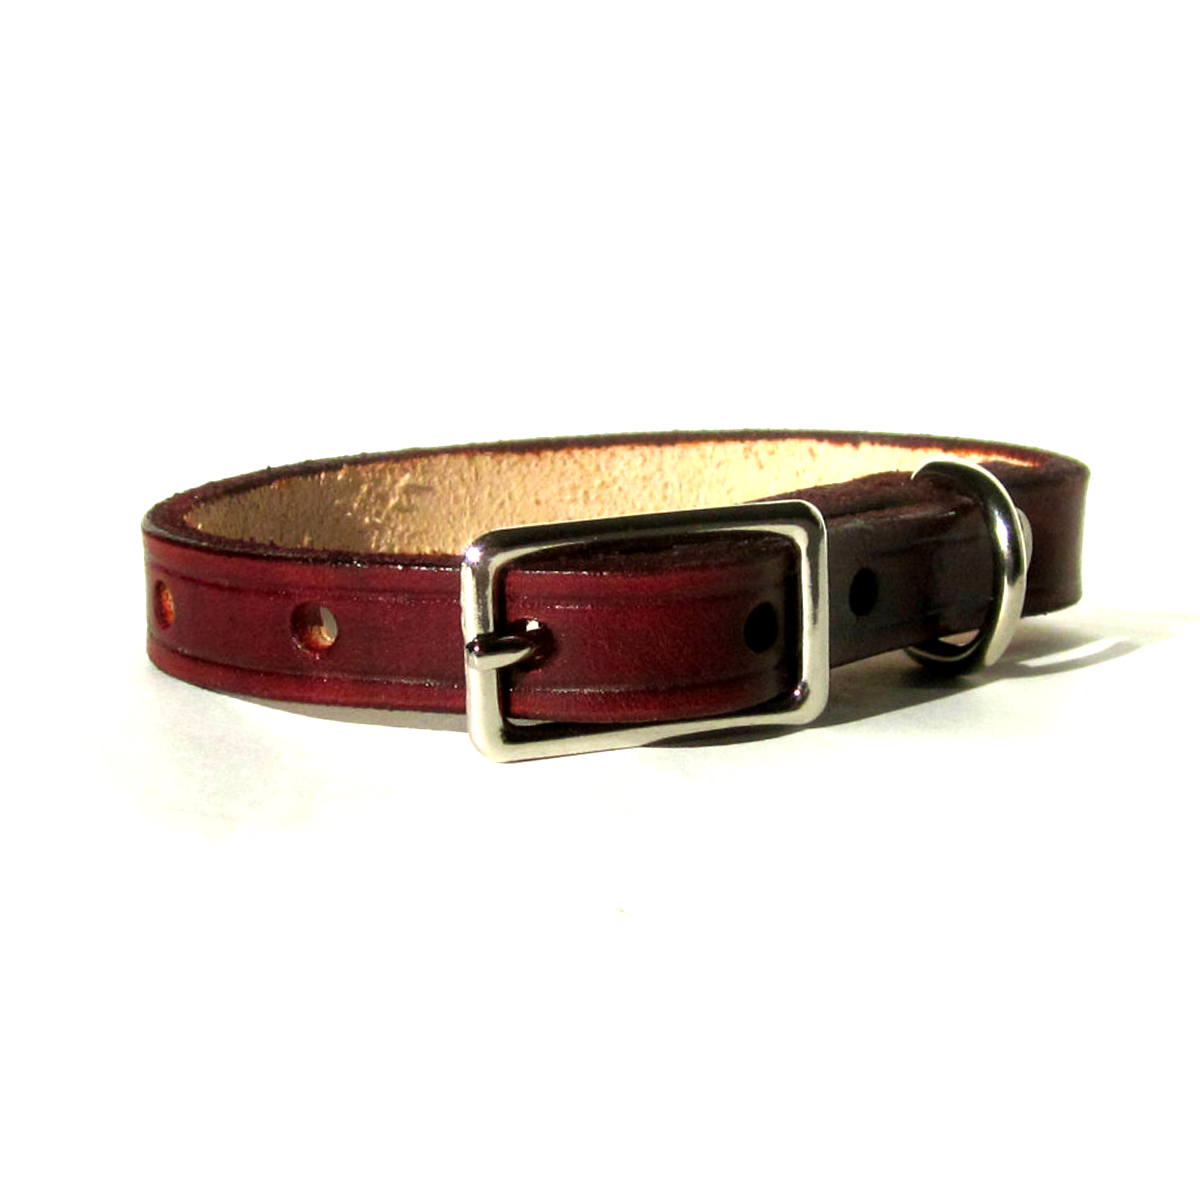 small-dog-puppy-leather-collar-the-leather-smithy_1